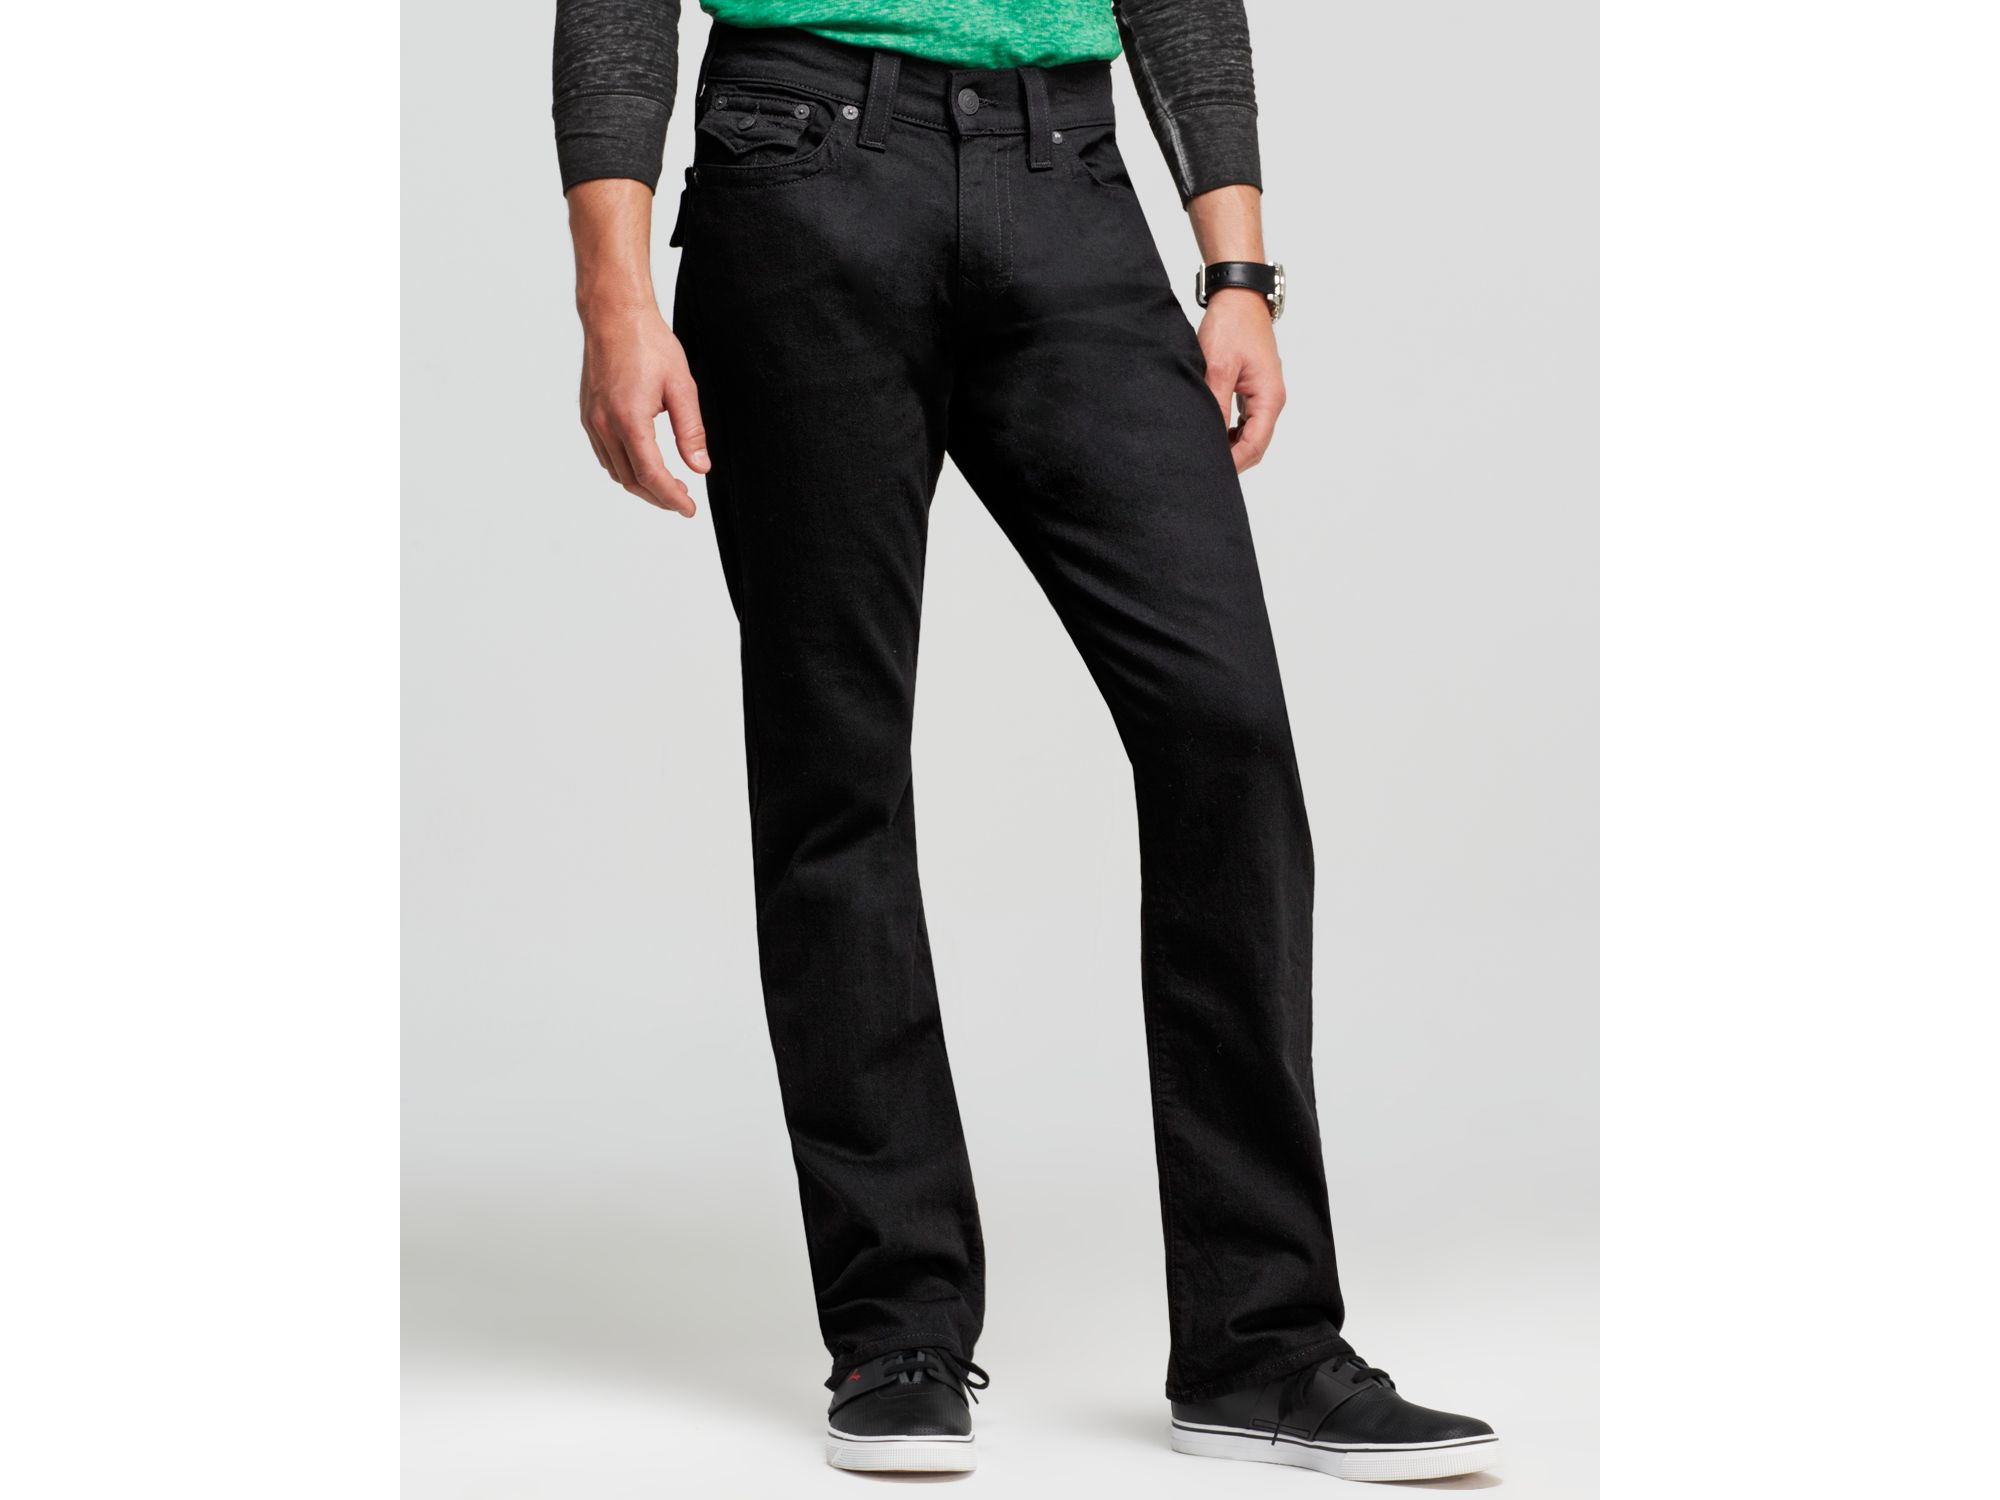 ea103de1a True Religion Jeans - Ricky Relaxed Fit In Black Midnight in Black ...